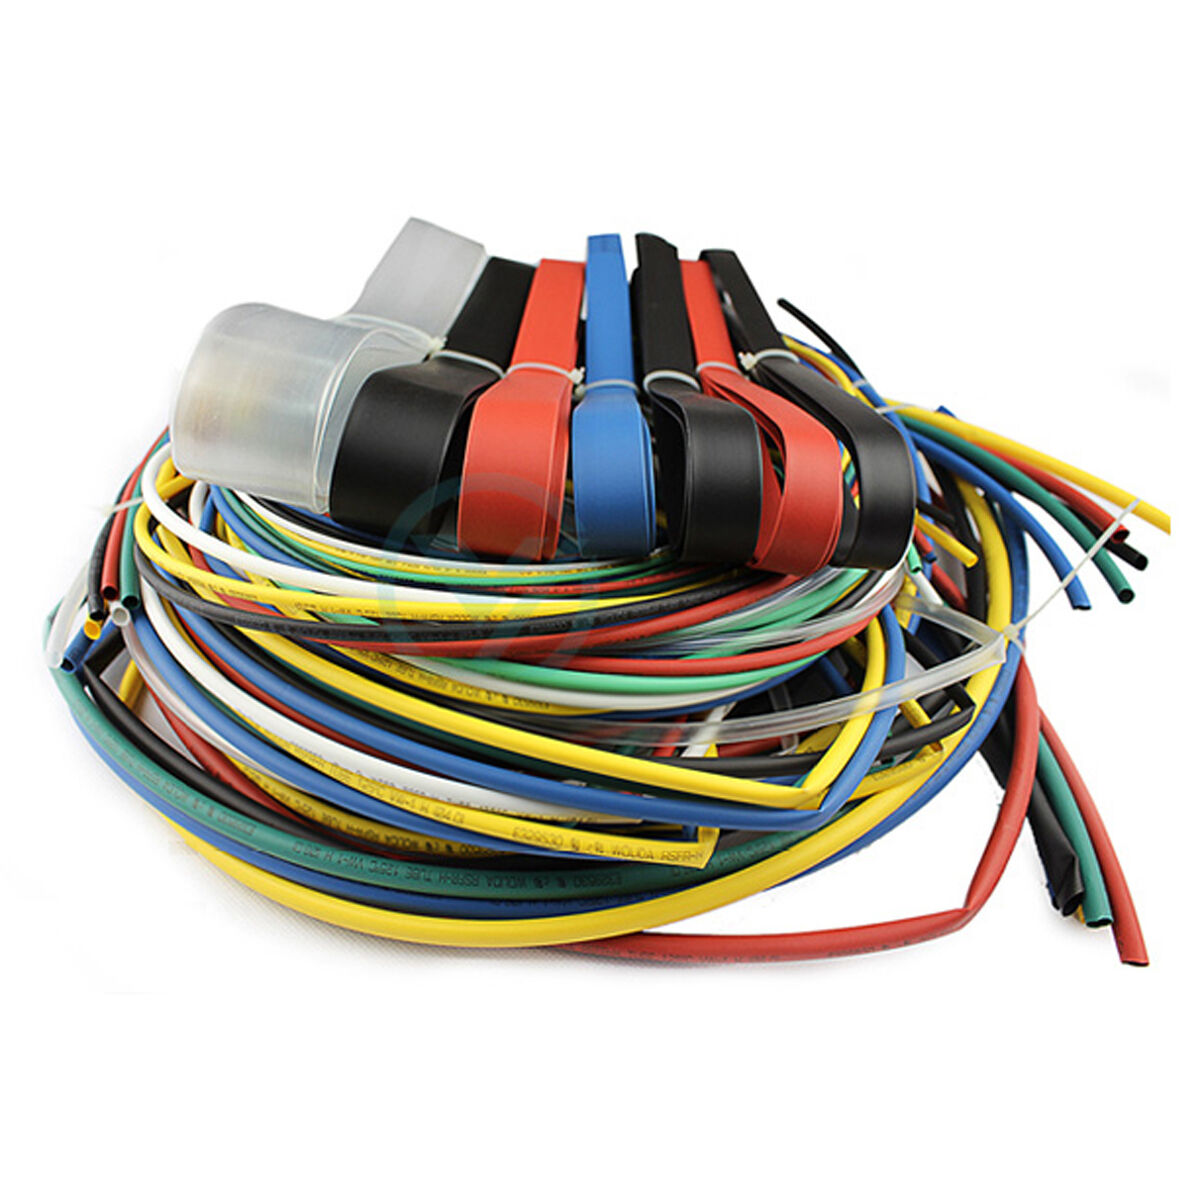 Sleeve Heat Shrink Wiring Harness Schematic Diagrams Tubing 73 Meters 11 Sizes Wire Cable Sleeves Tubes Rings